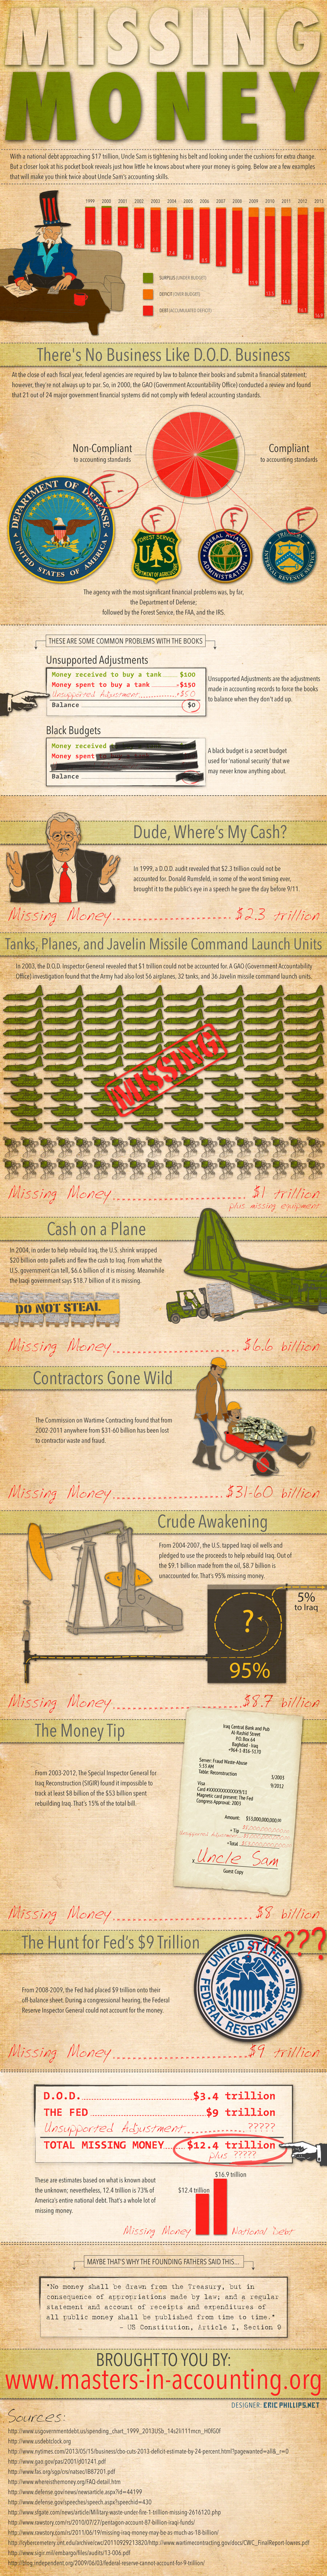 Missing Money from Government Accounting - Infographic